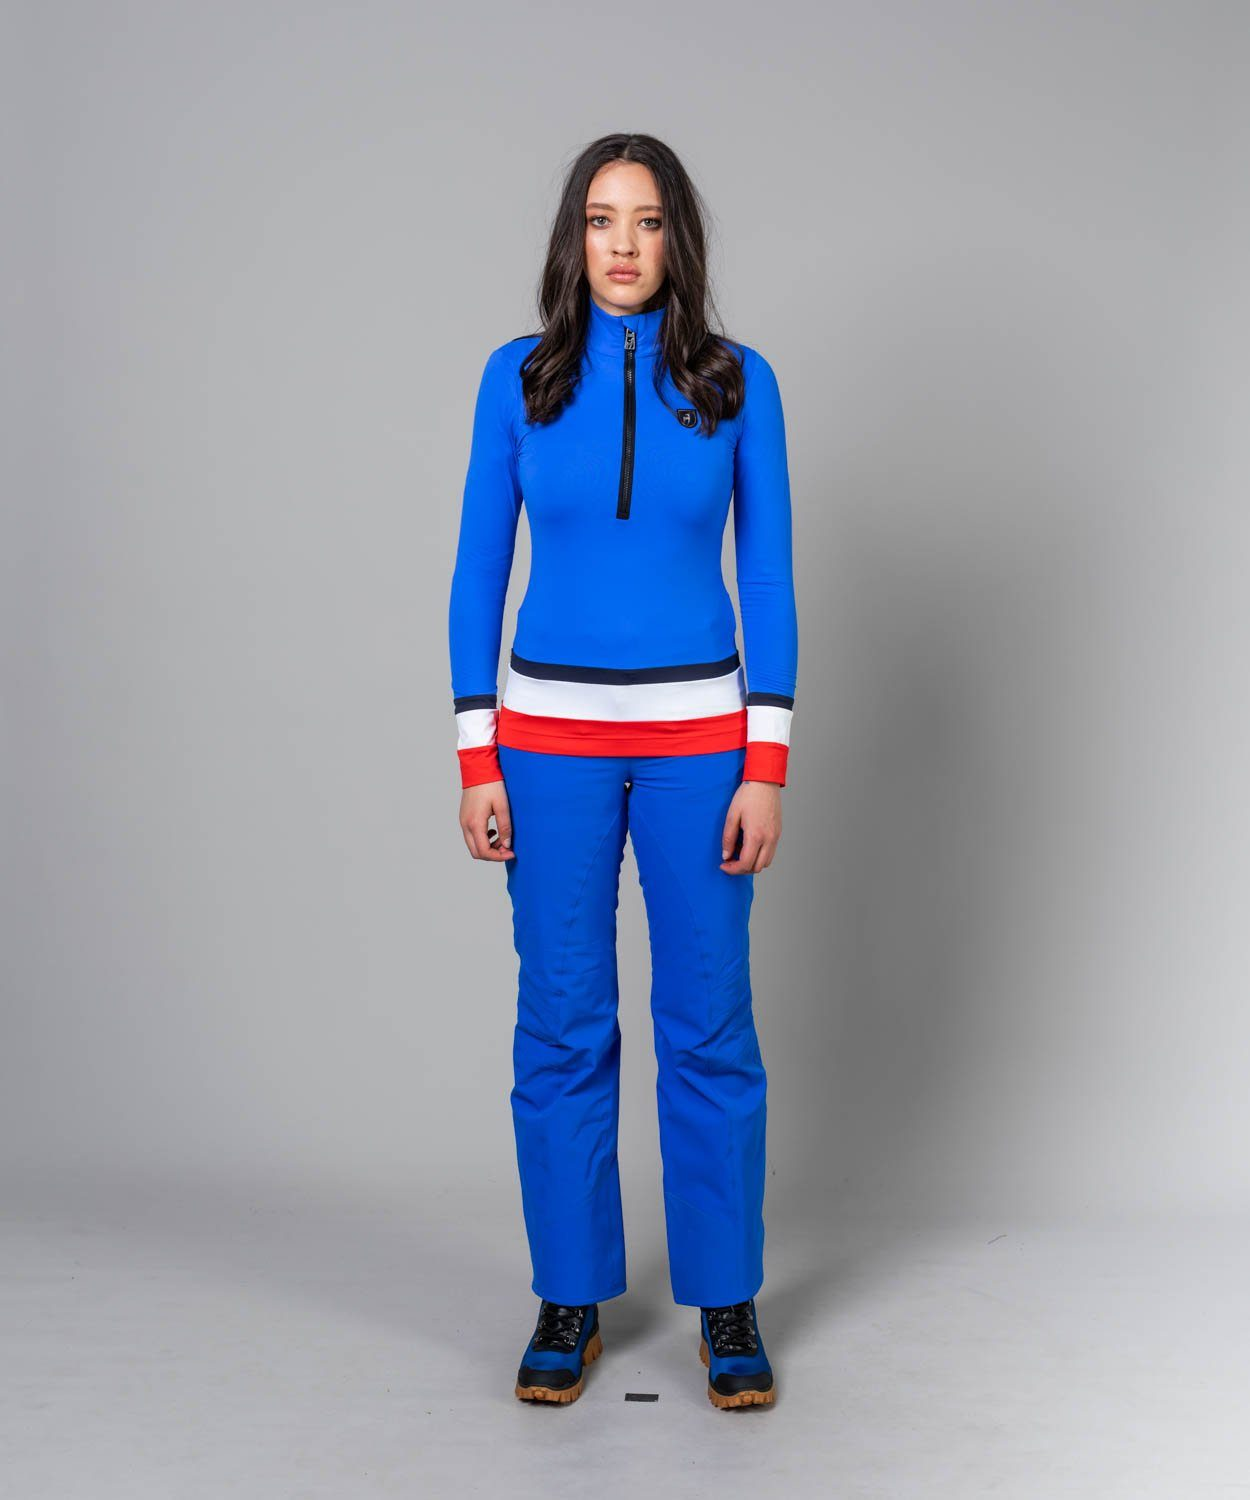 Women's Alla New Ski Pants Ski Pants Toni Sailer Yves Blue S